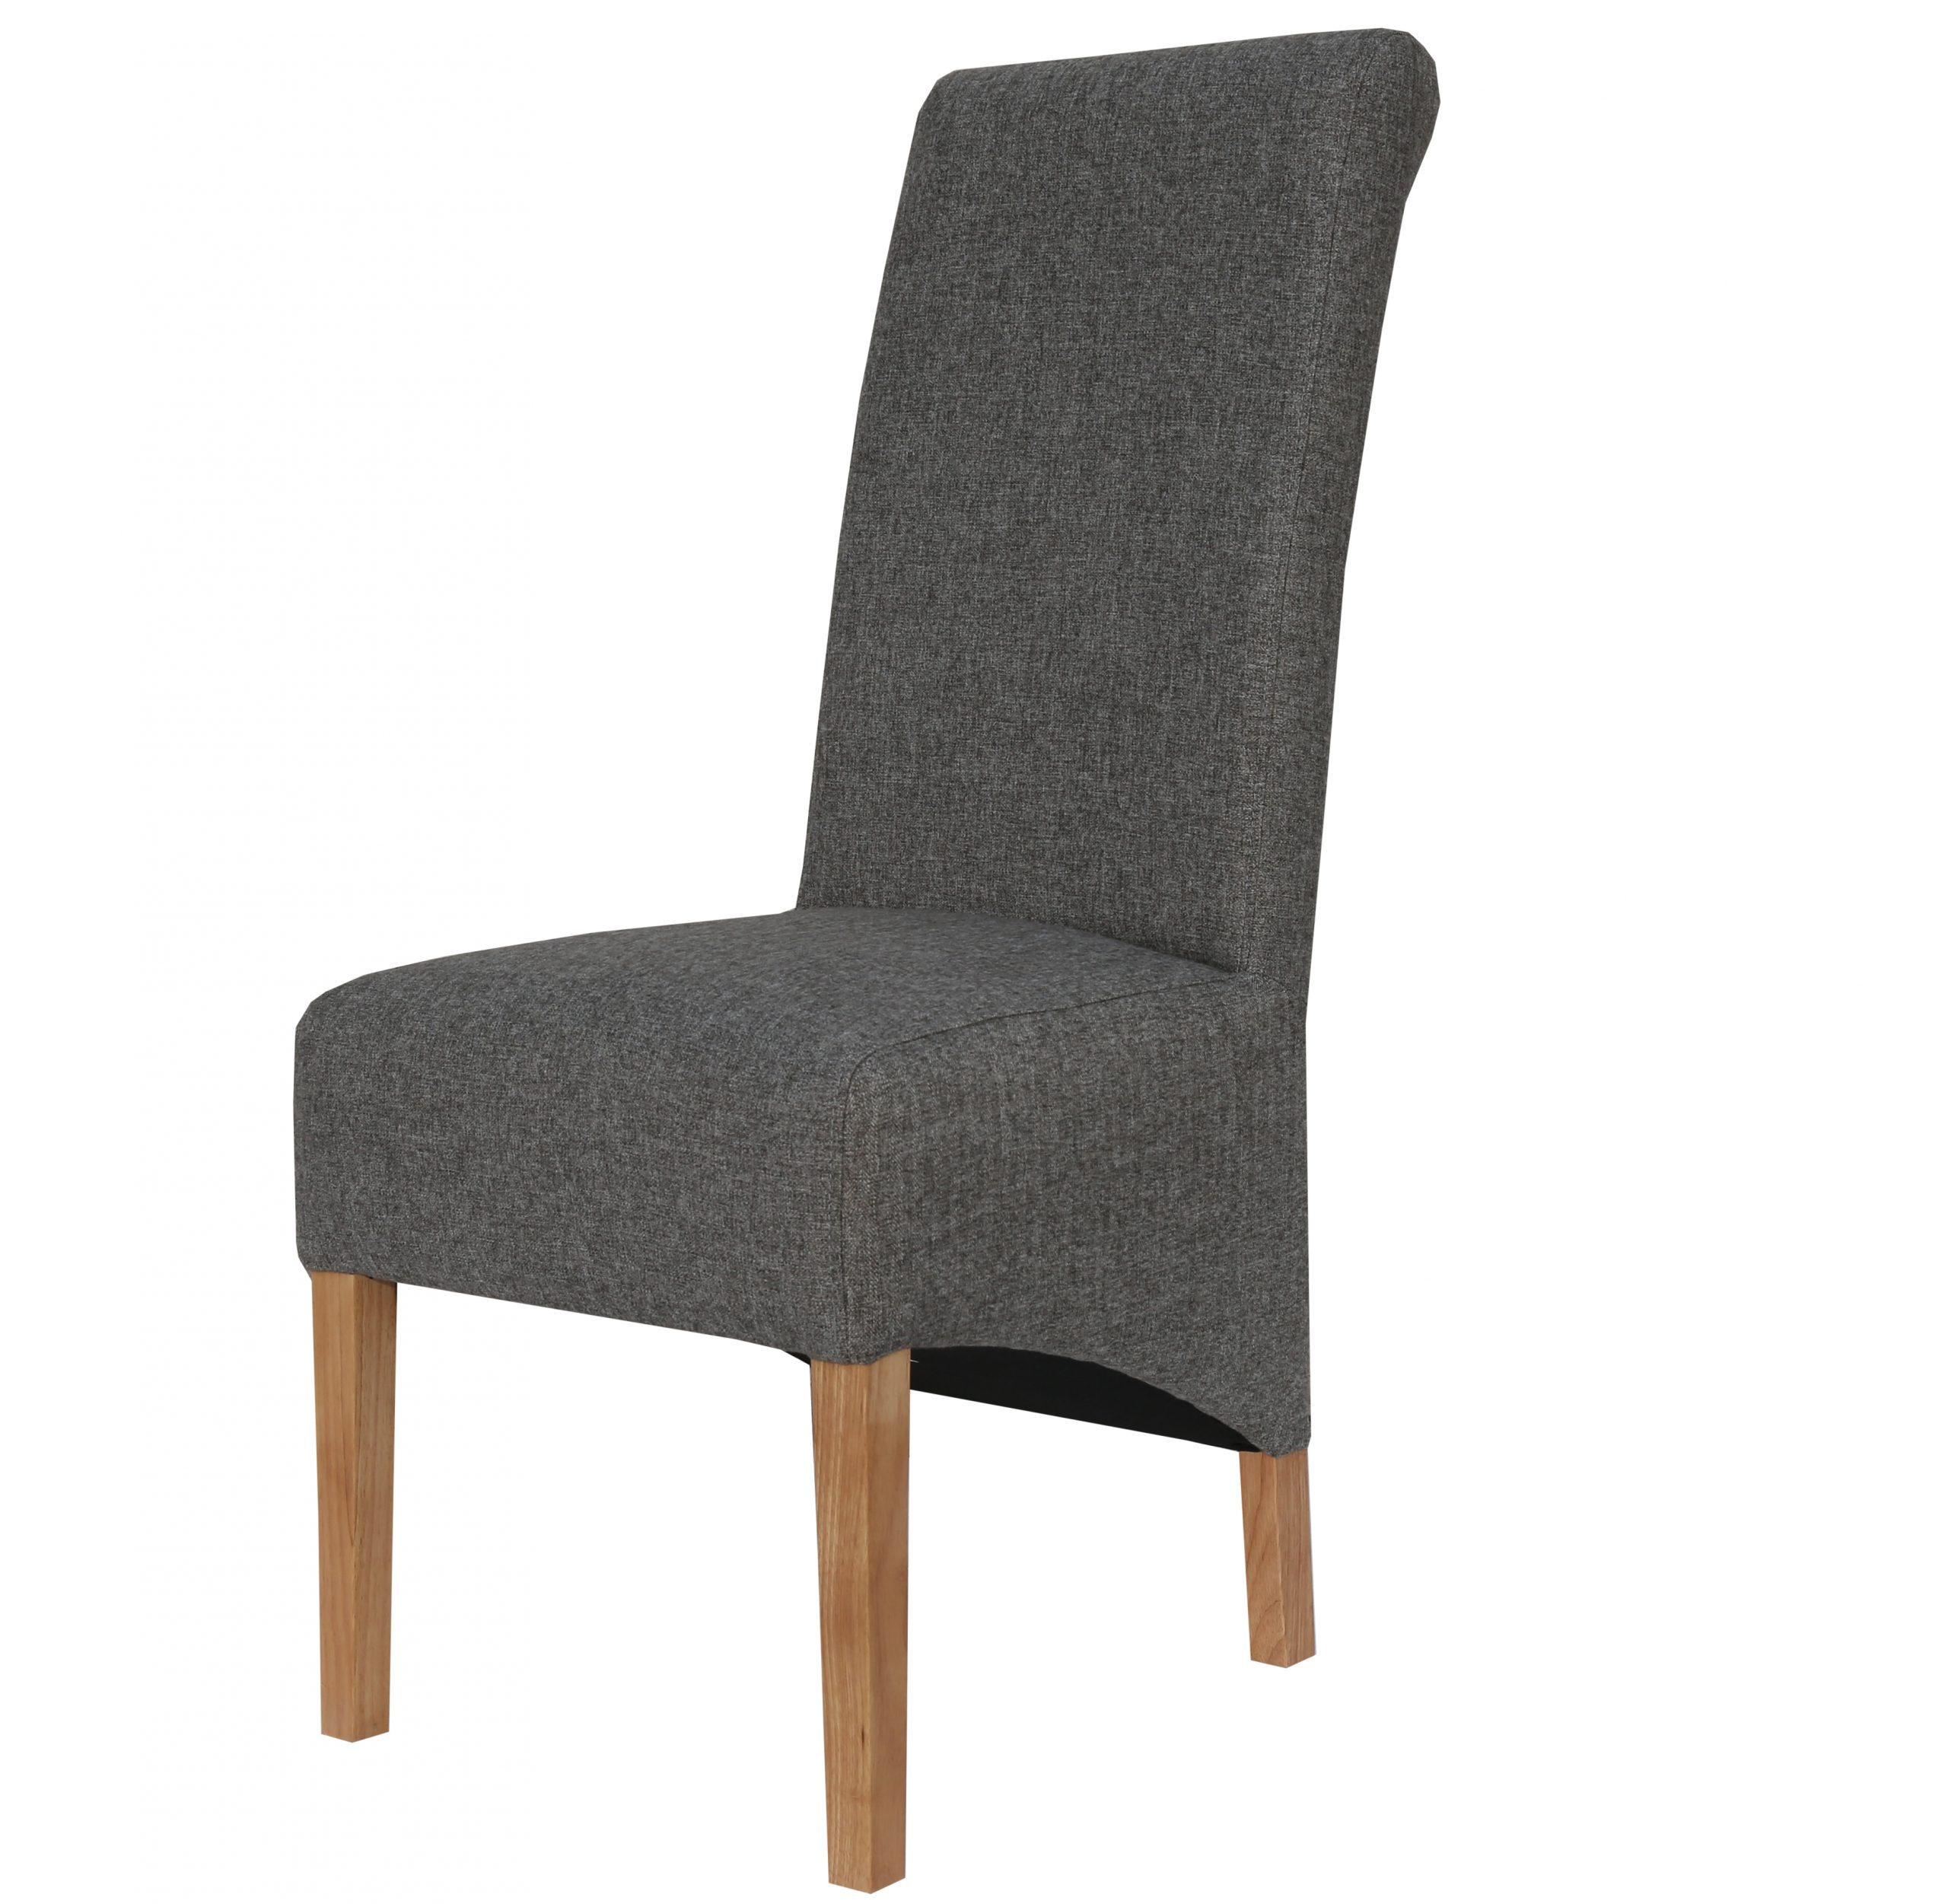 Carter Roll top grey fabric dining chair